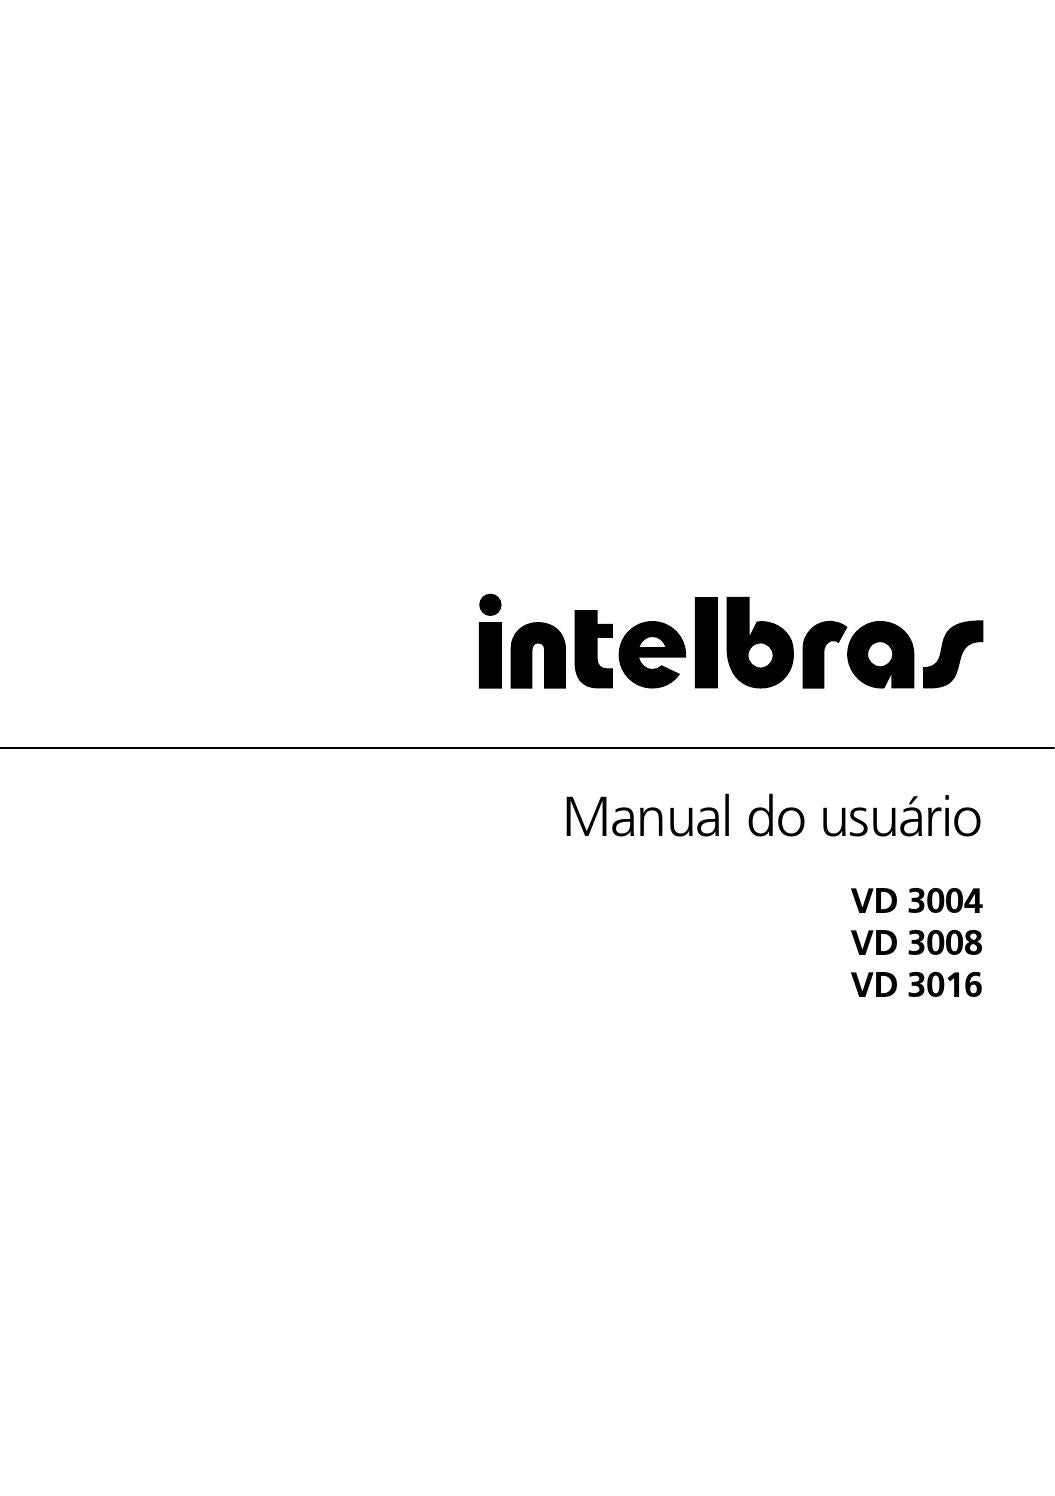 Manual vd 3004 3008 3016 portugues 01 14 site by Bruno